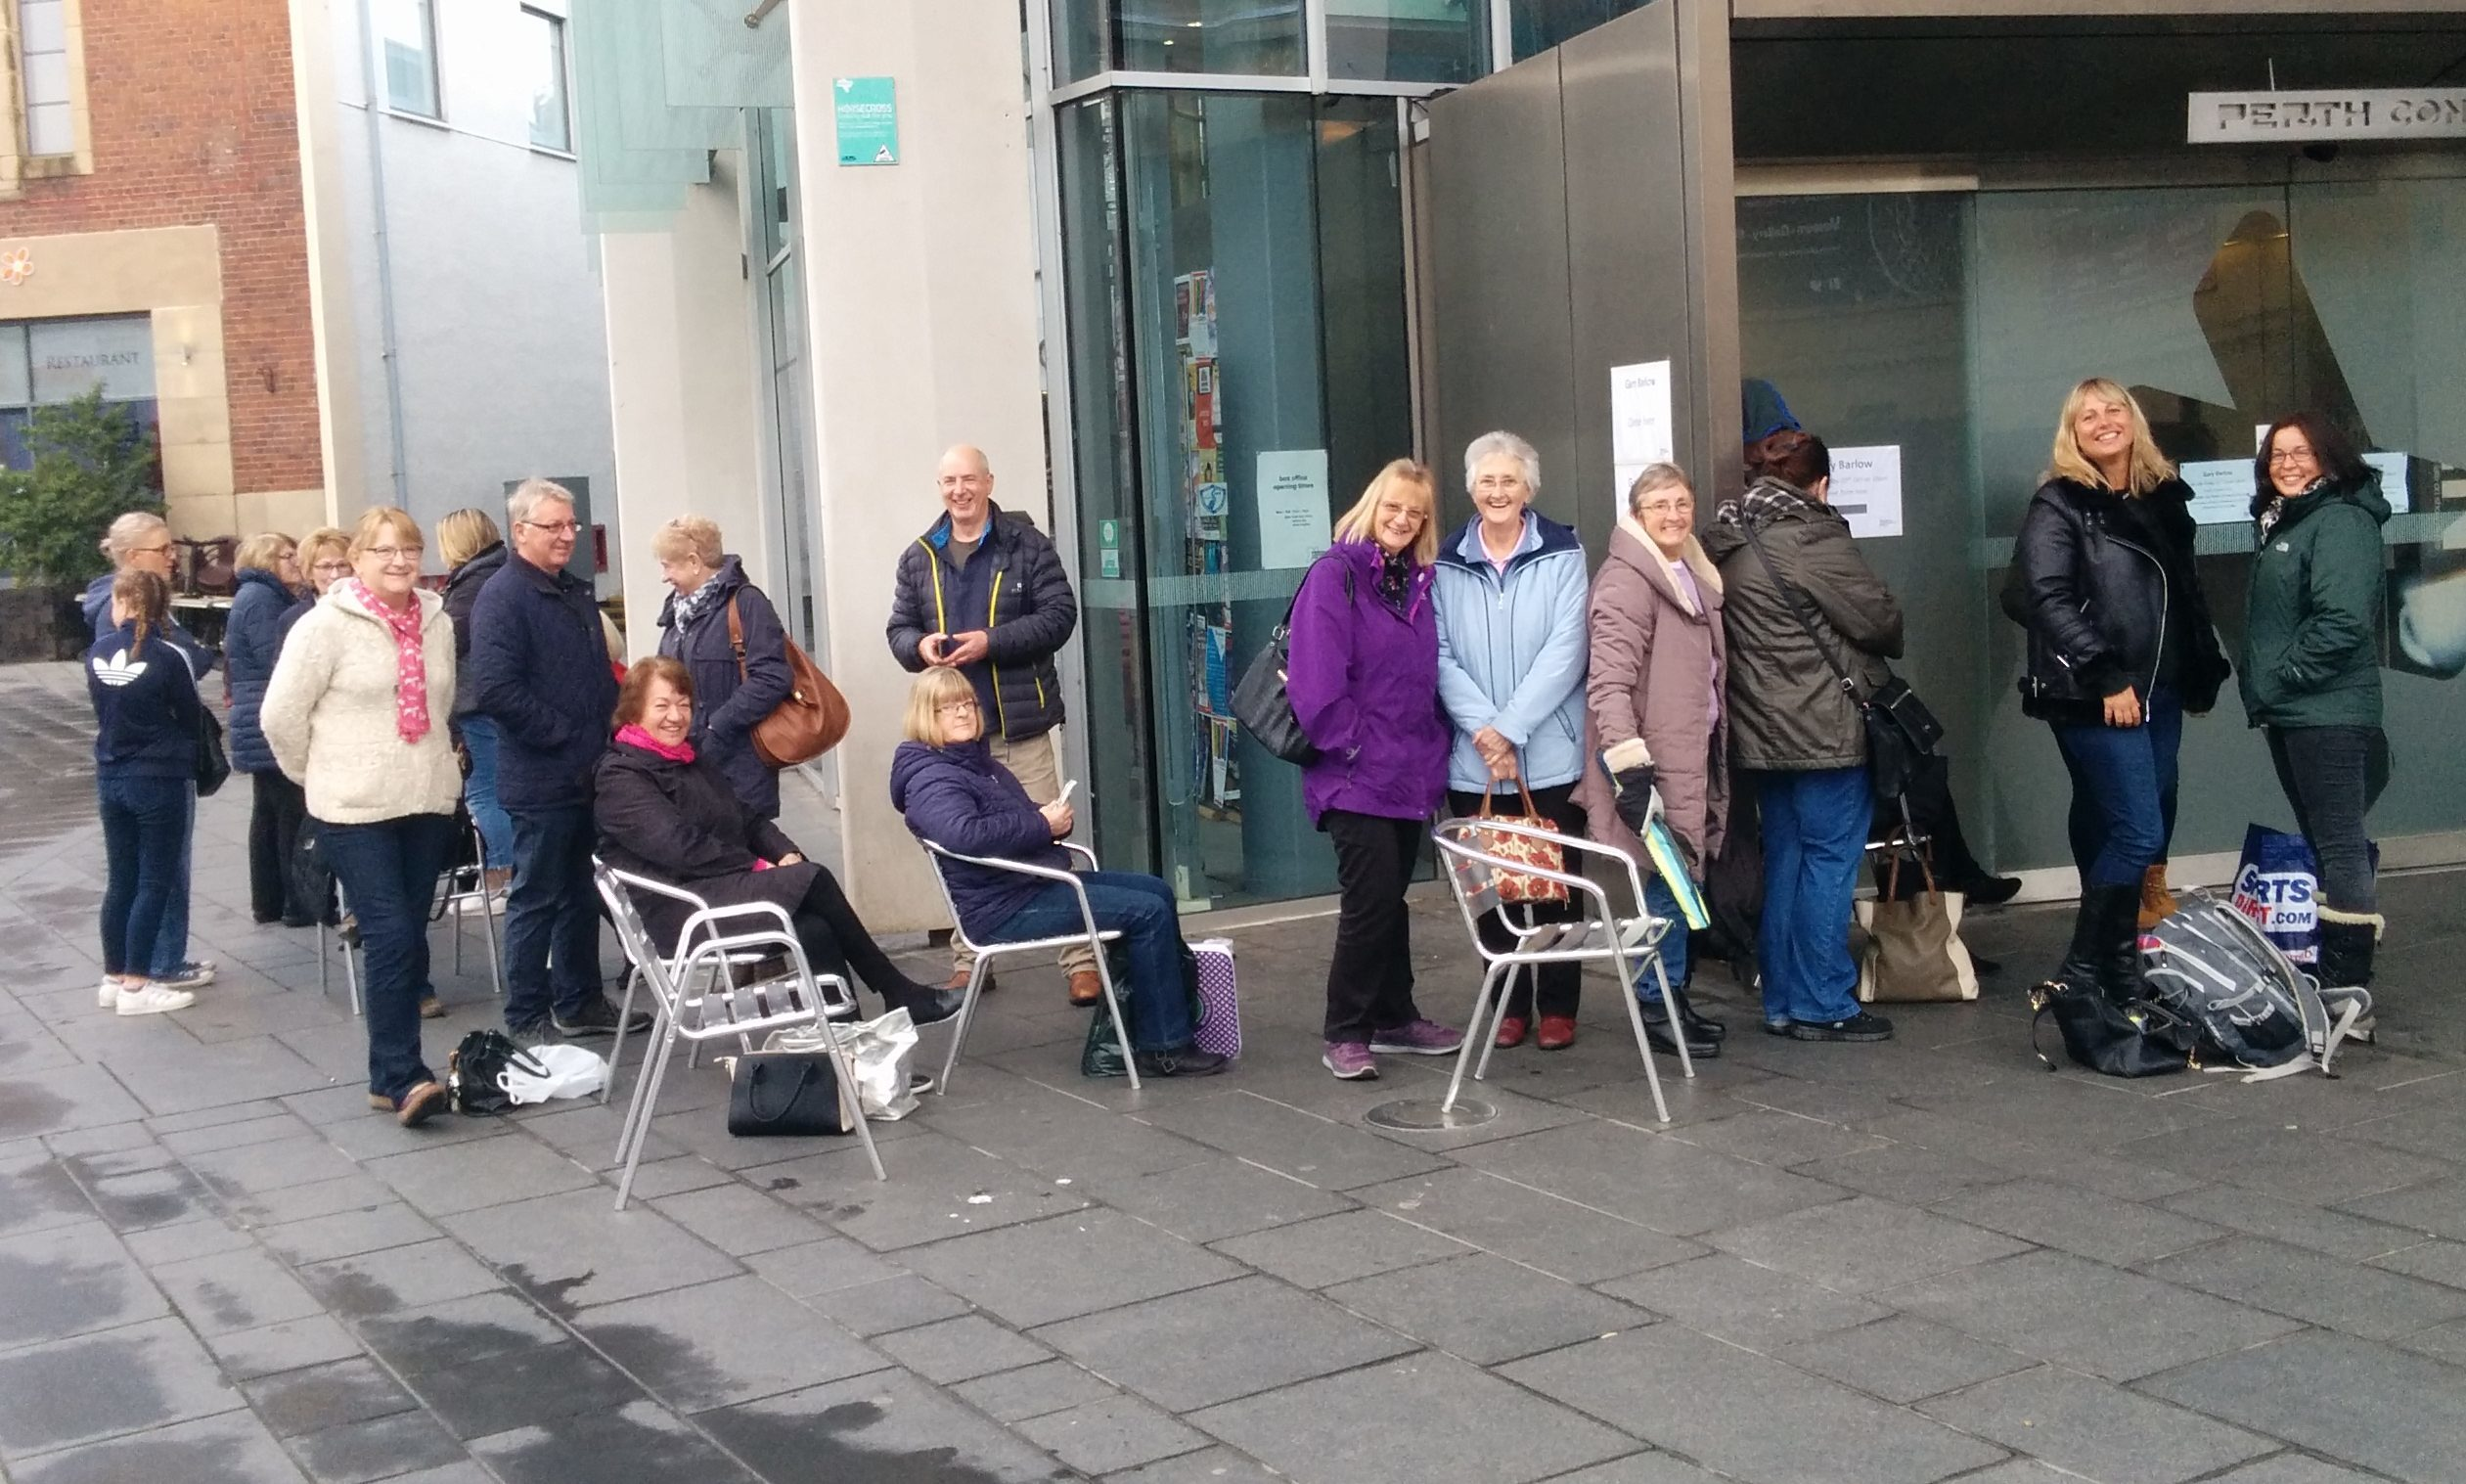 Perth fans queue for Gary Barlow tickets